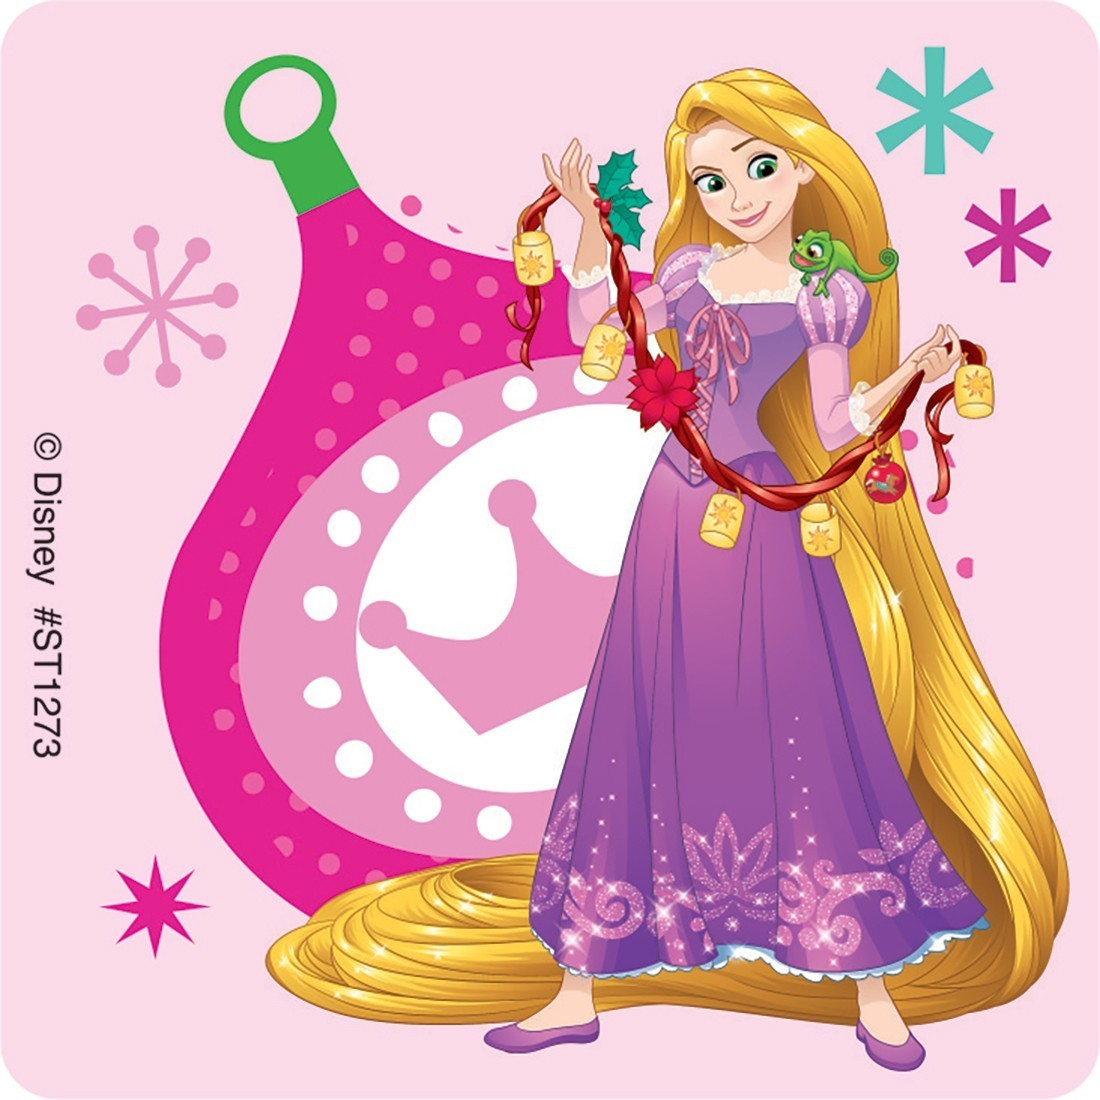 Disney Princess Christmas Stickers - Stickers from SmileMakers